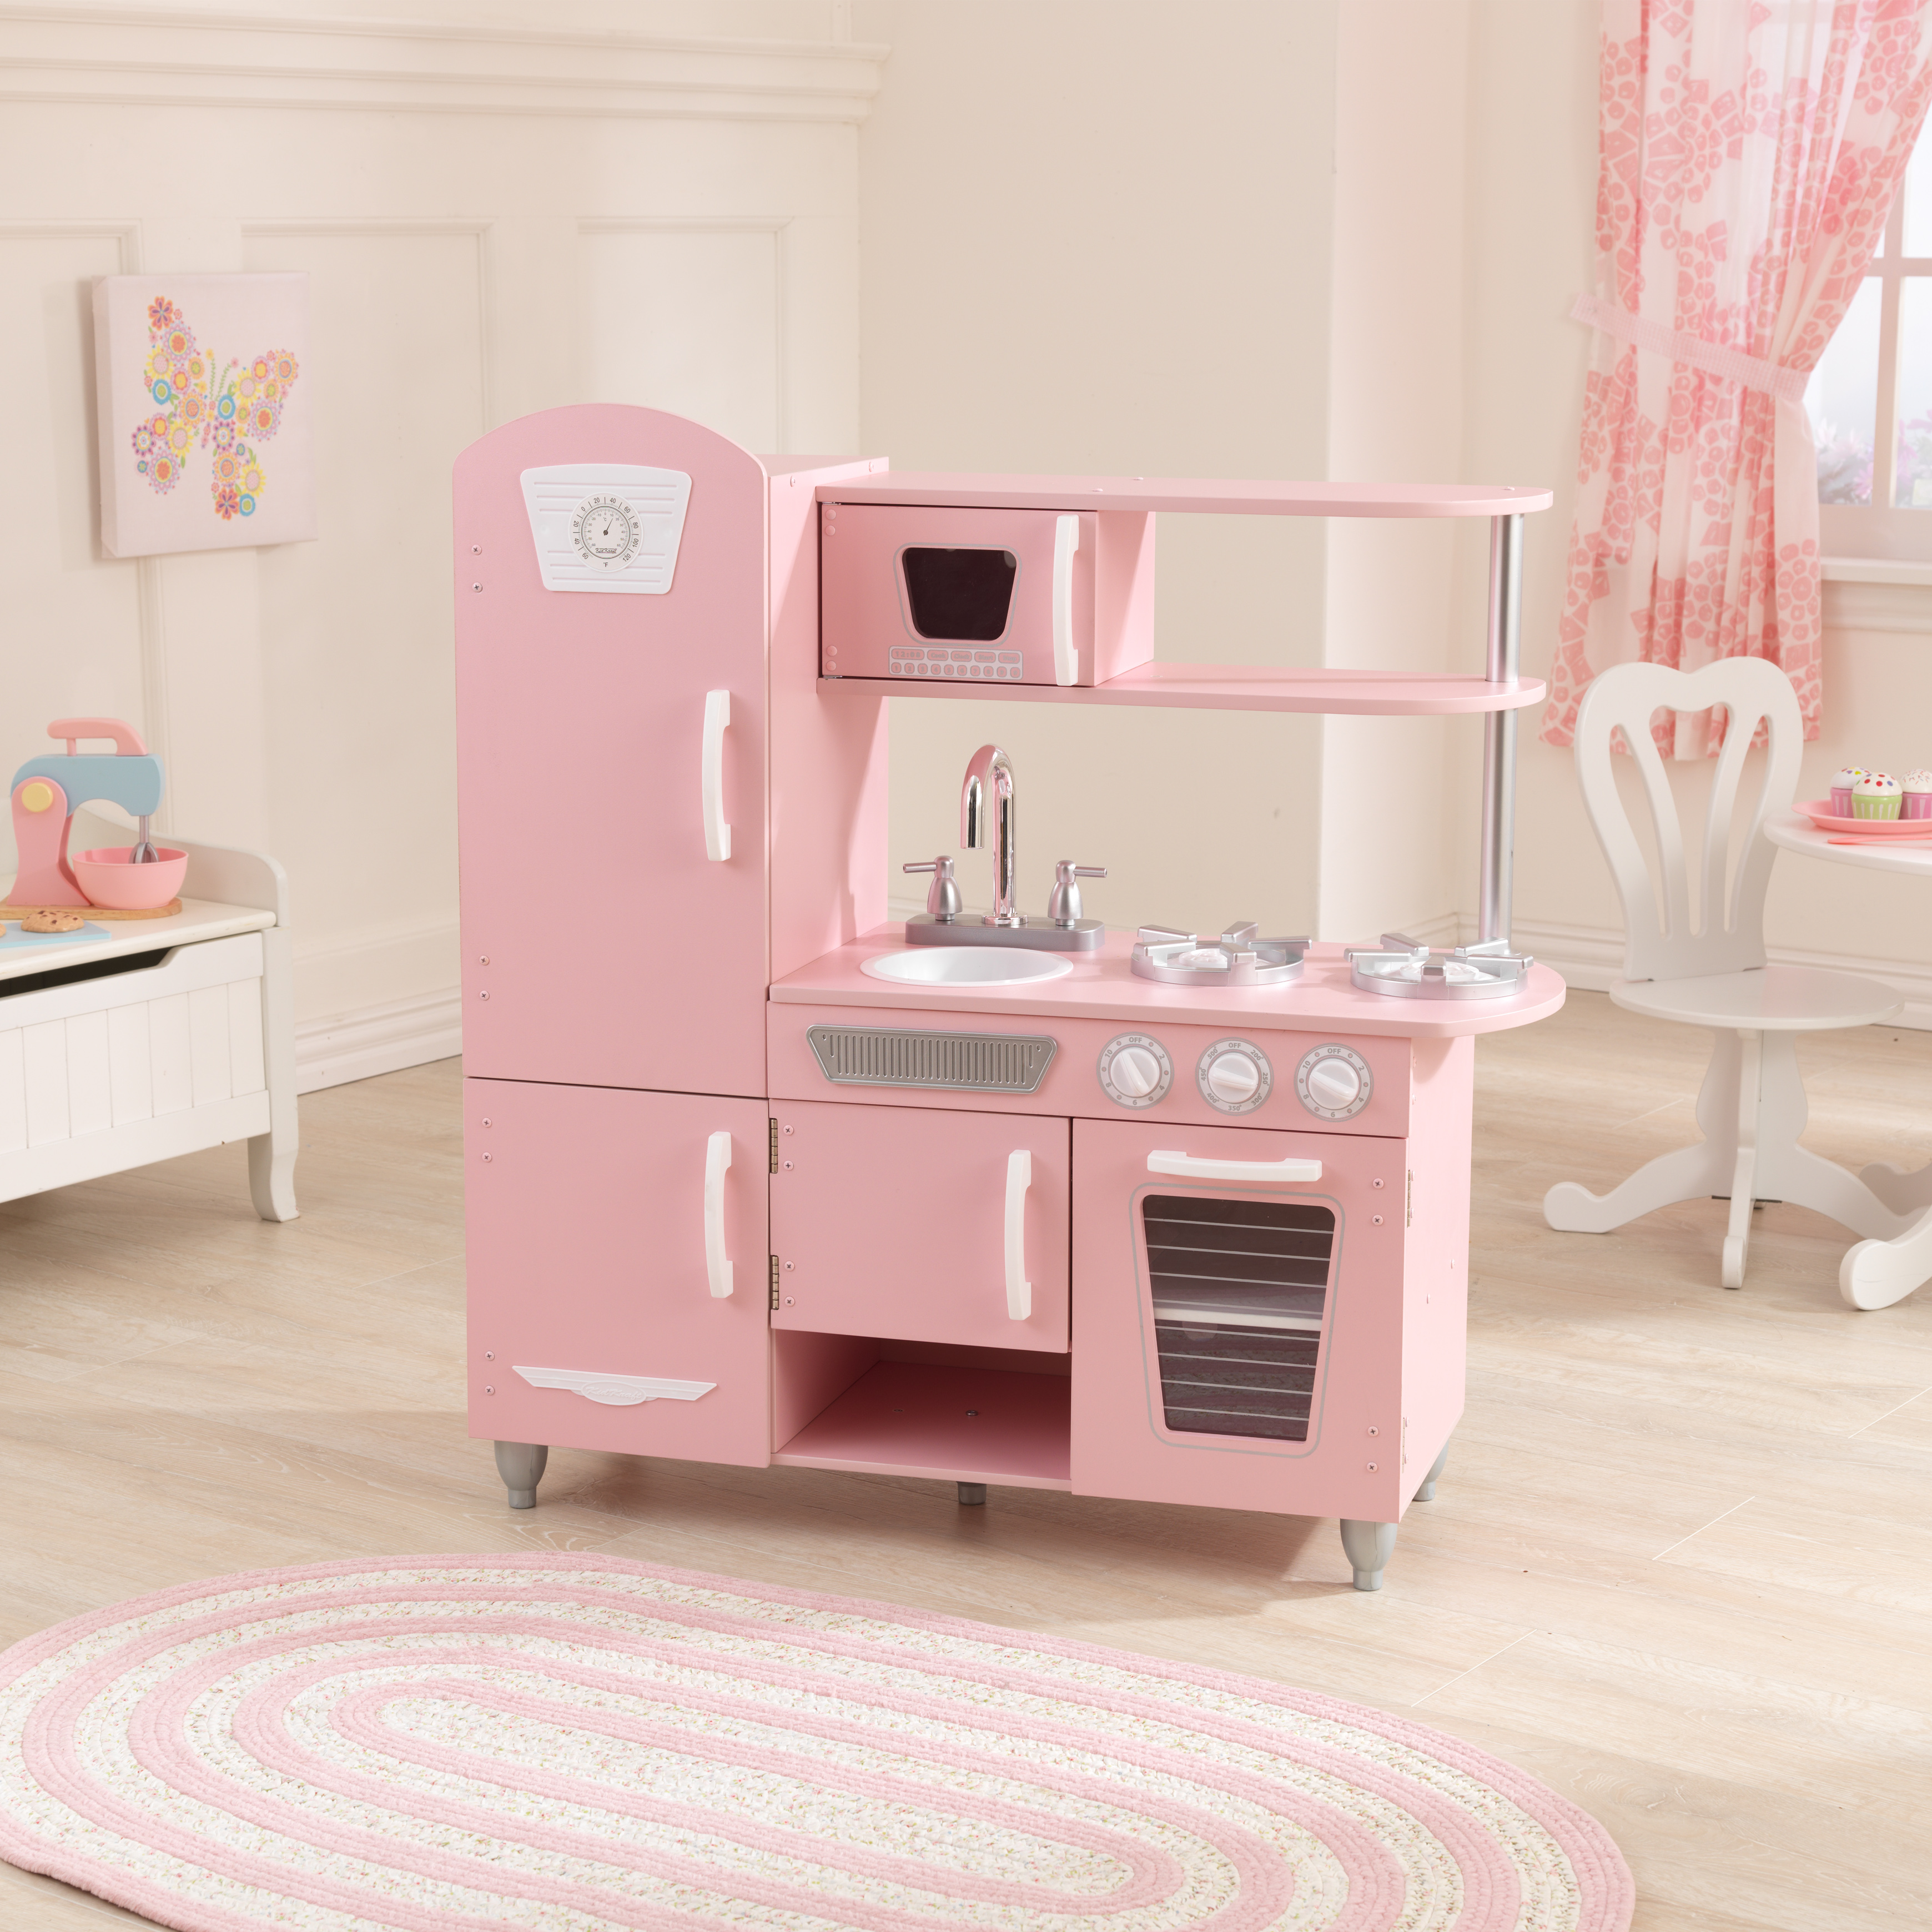 kidkraft vintage play kitchen - pink - walmart